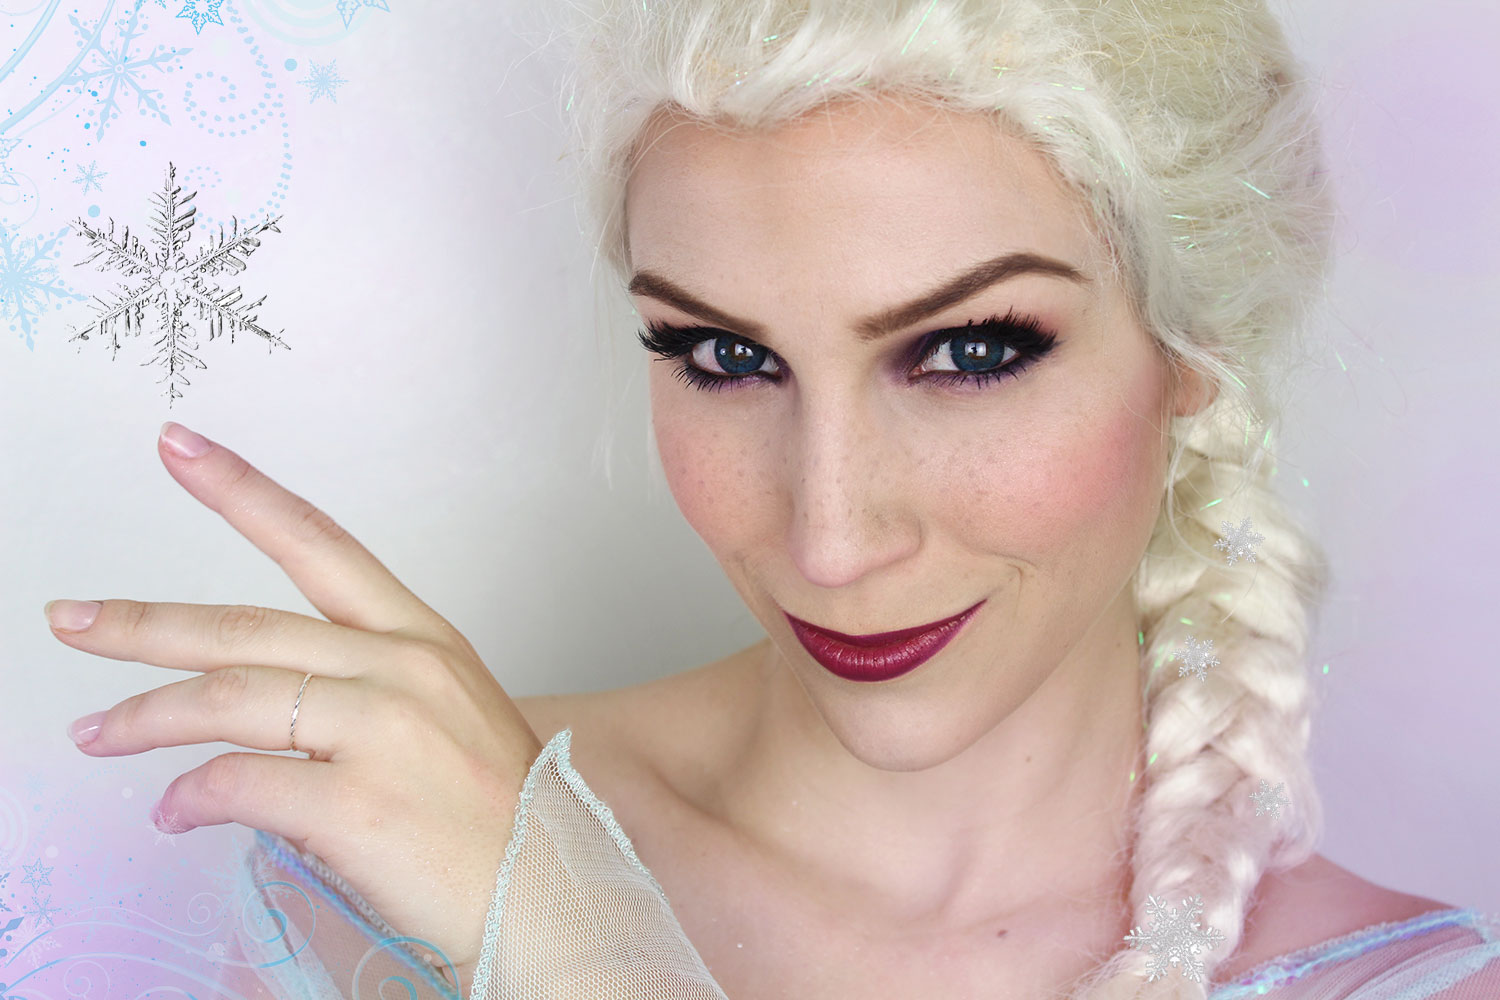 Maquillage d halloween elsa la reine des neiges - Reine des neiges elsa ...